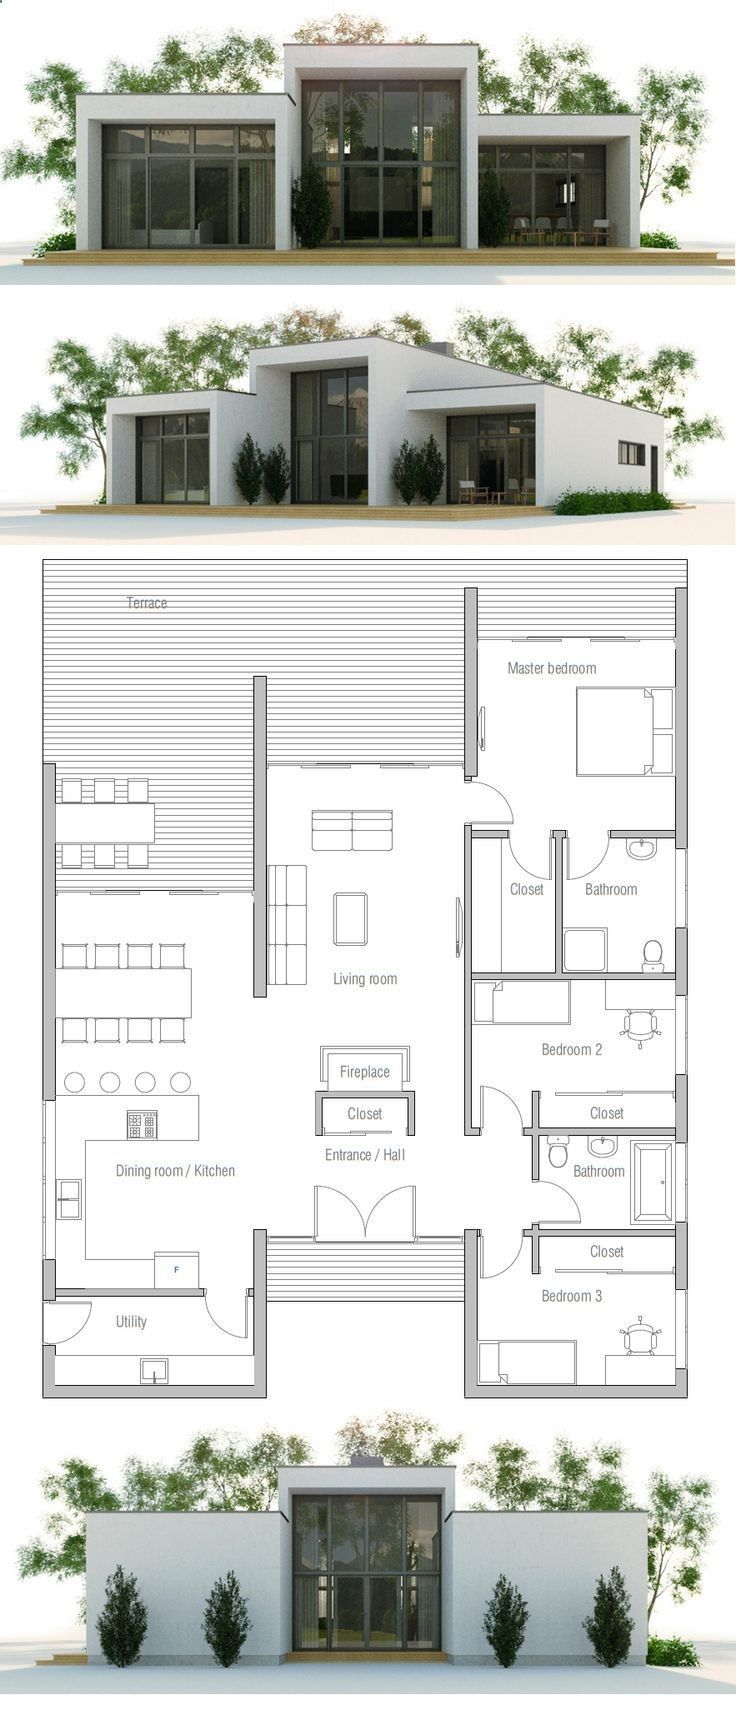 Container homes plans house plan who else wants simple stepby